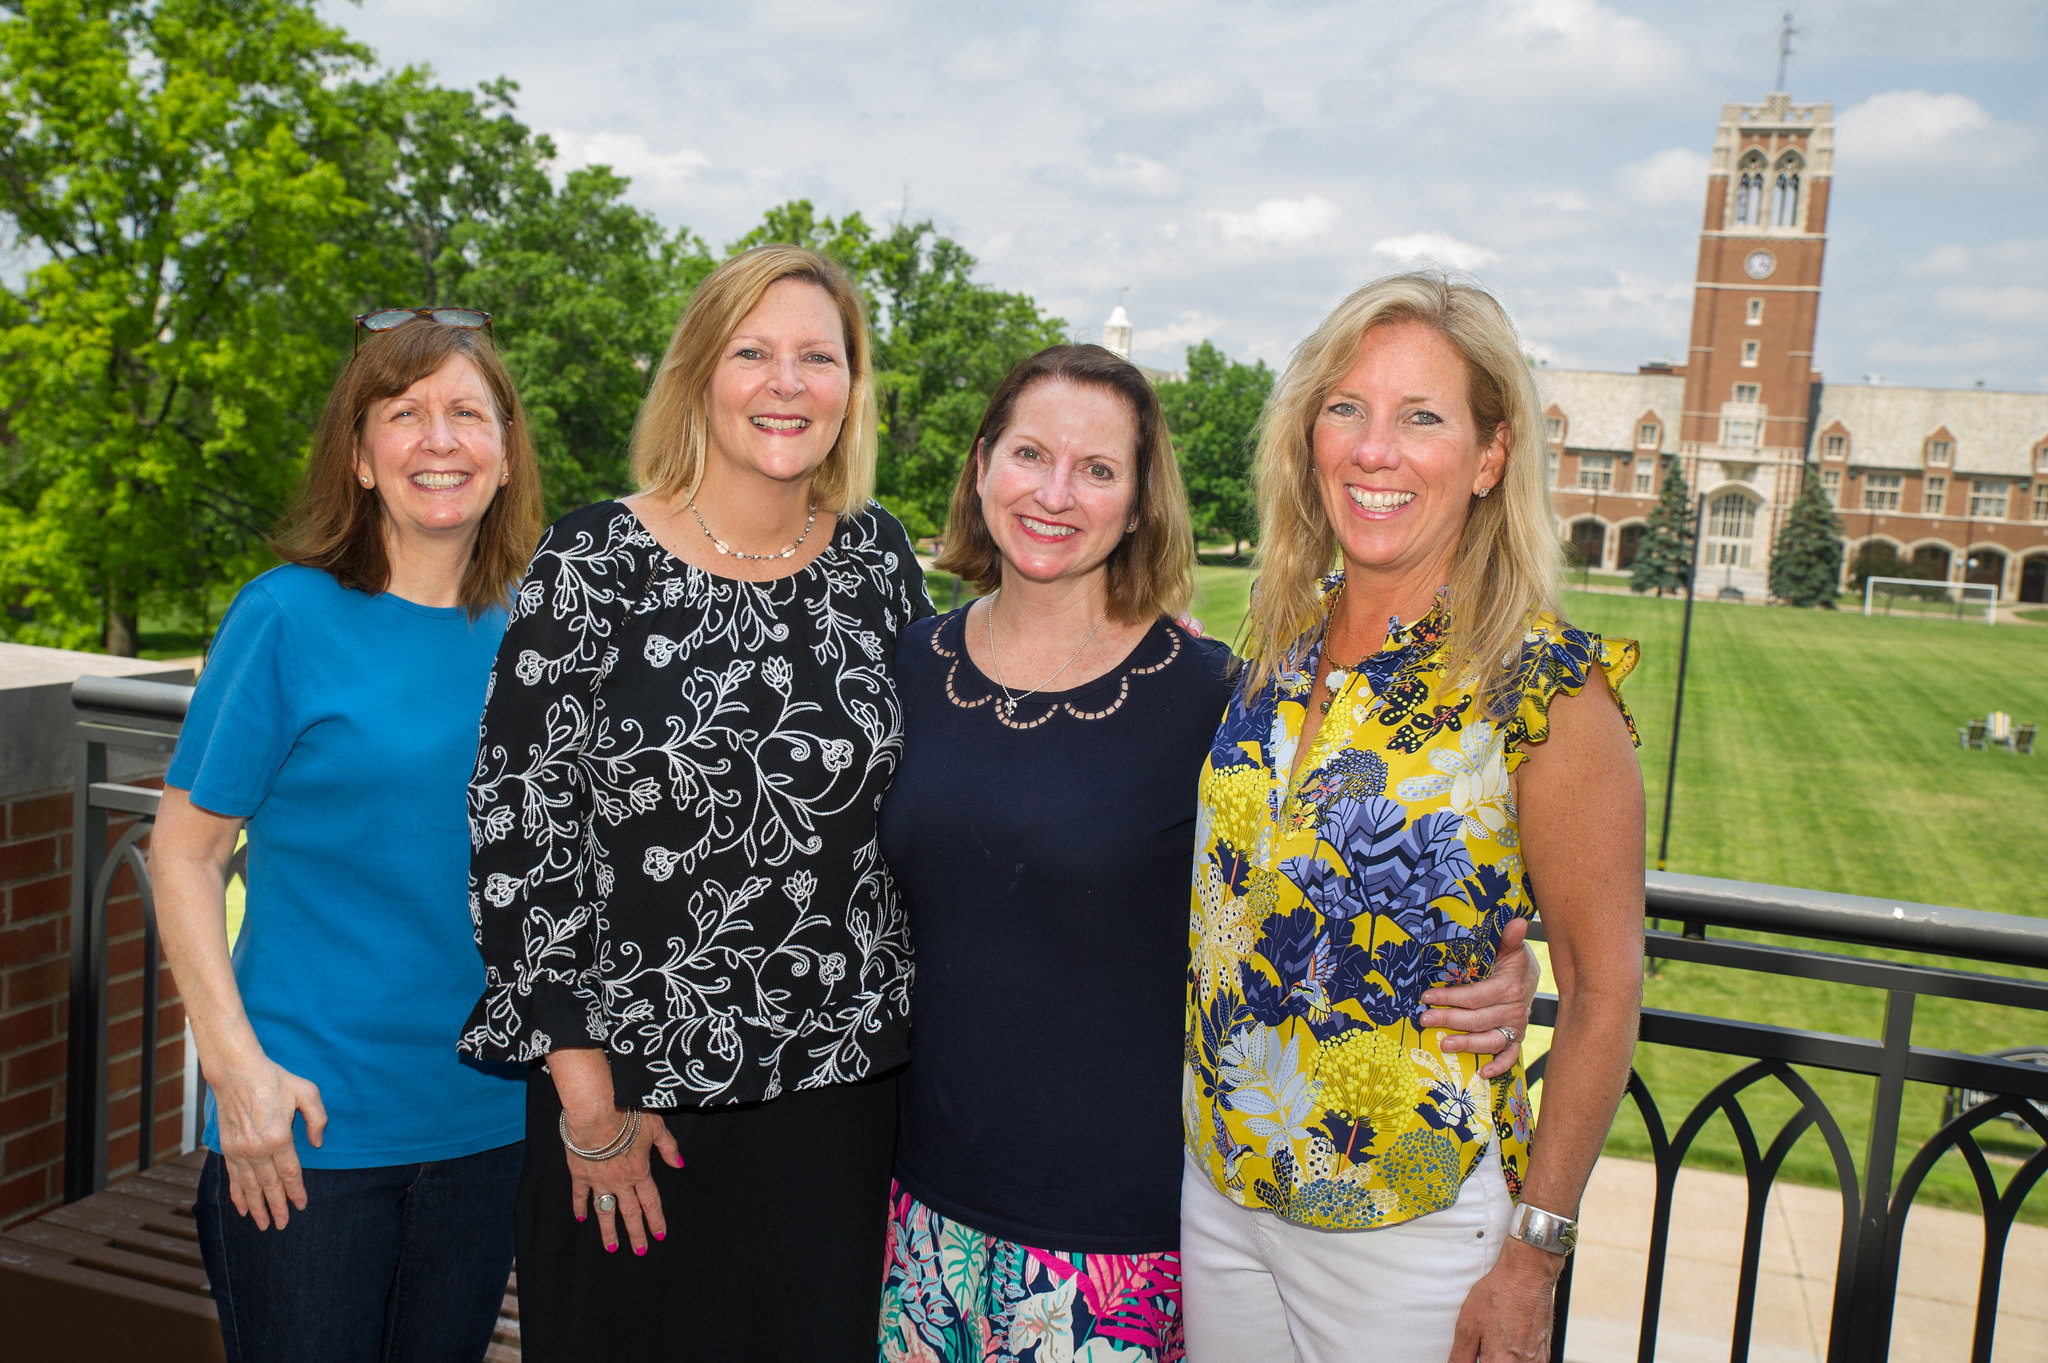 Four female alumni stand on the balcony and smile with the bell tower in the background.